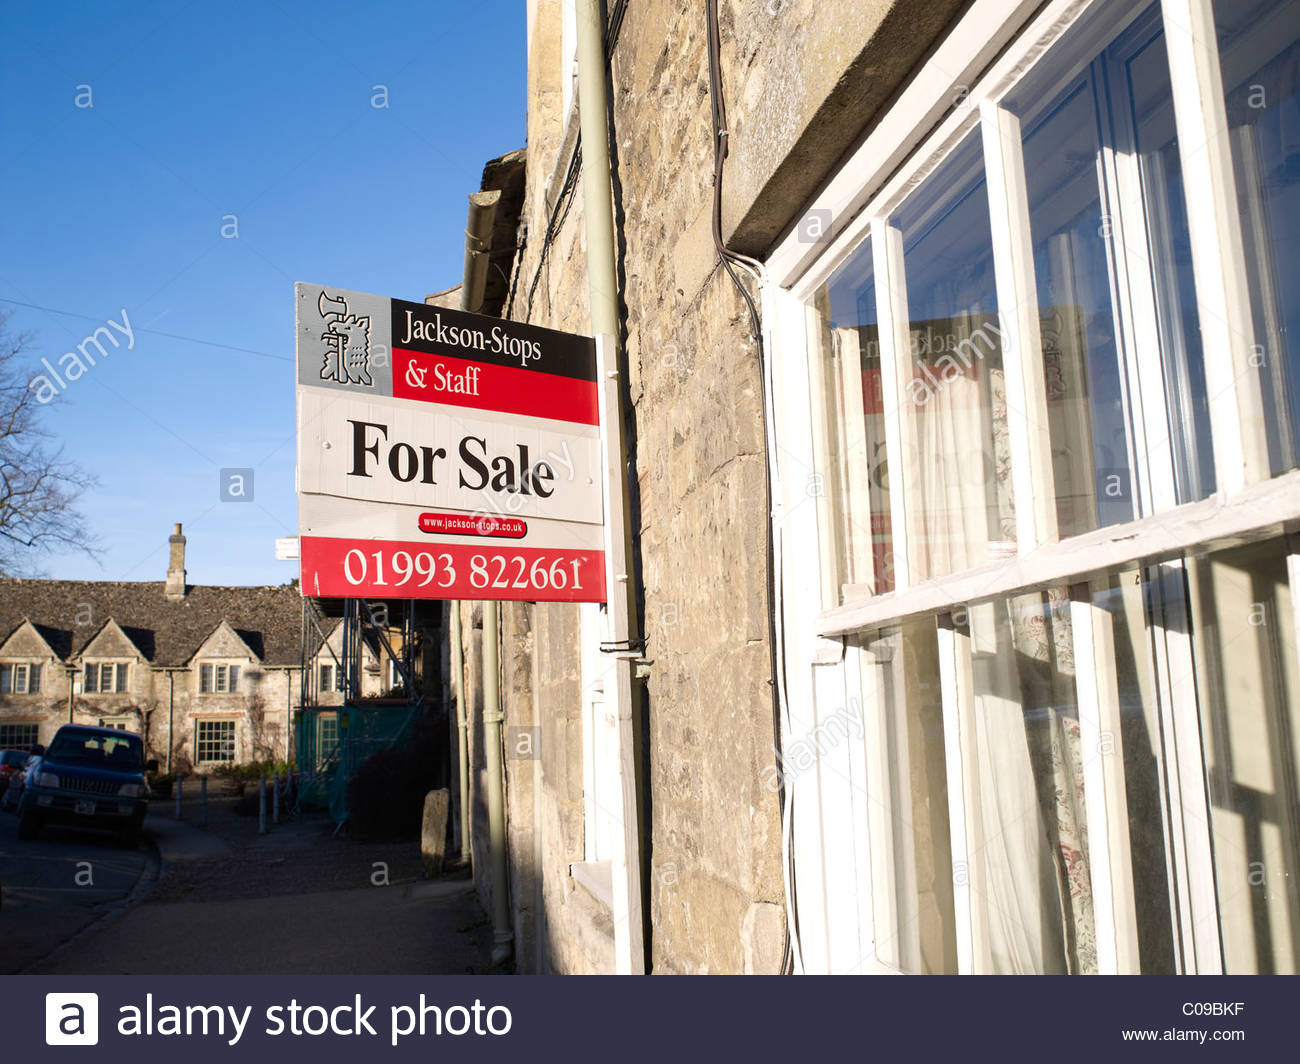 House for sale sign in Burford,Oxfordshire - Stock Image